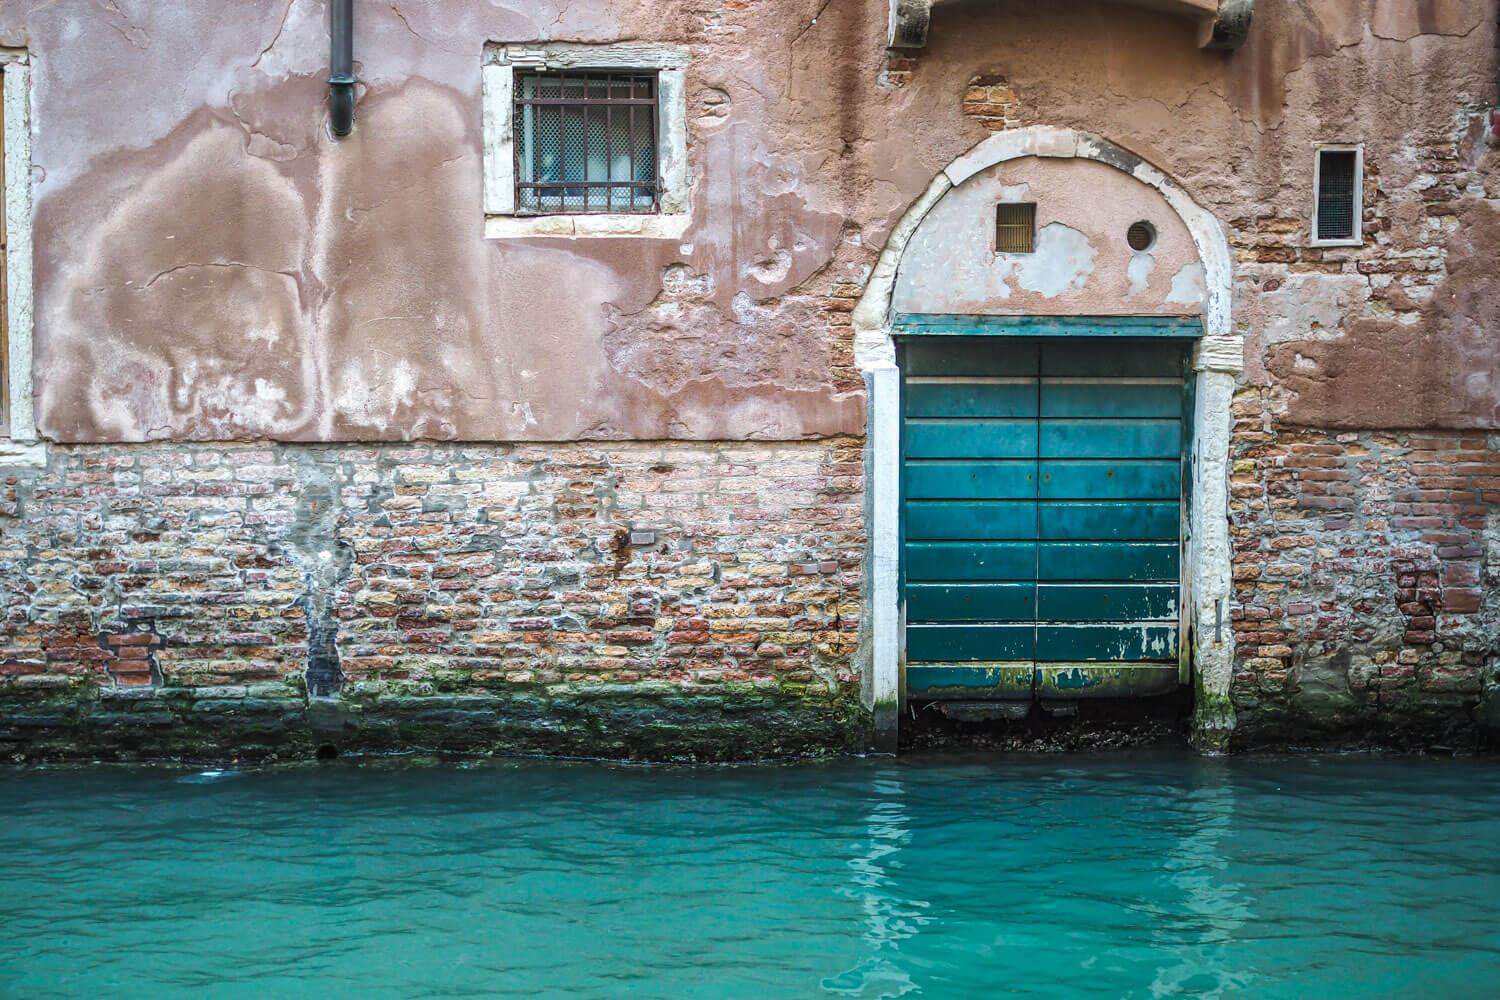 Venice,aqua door, travel photography